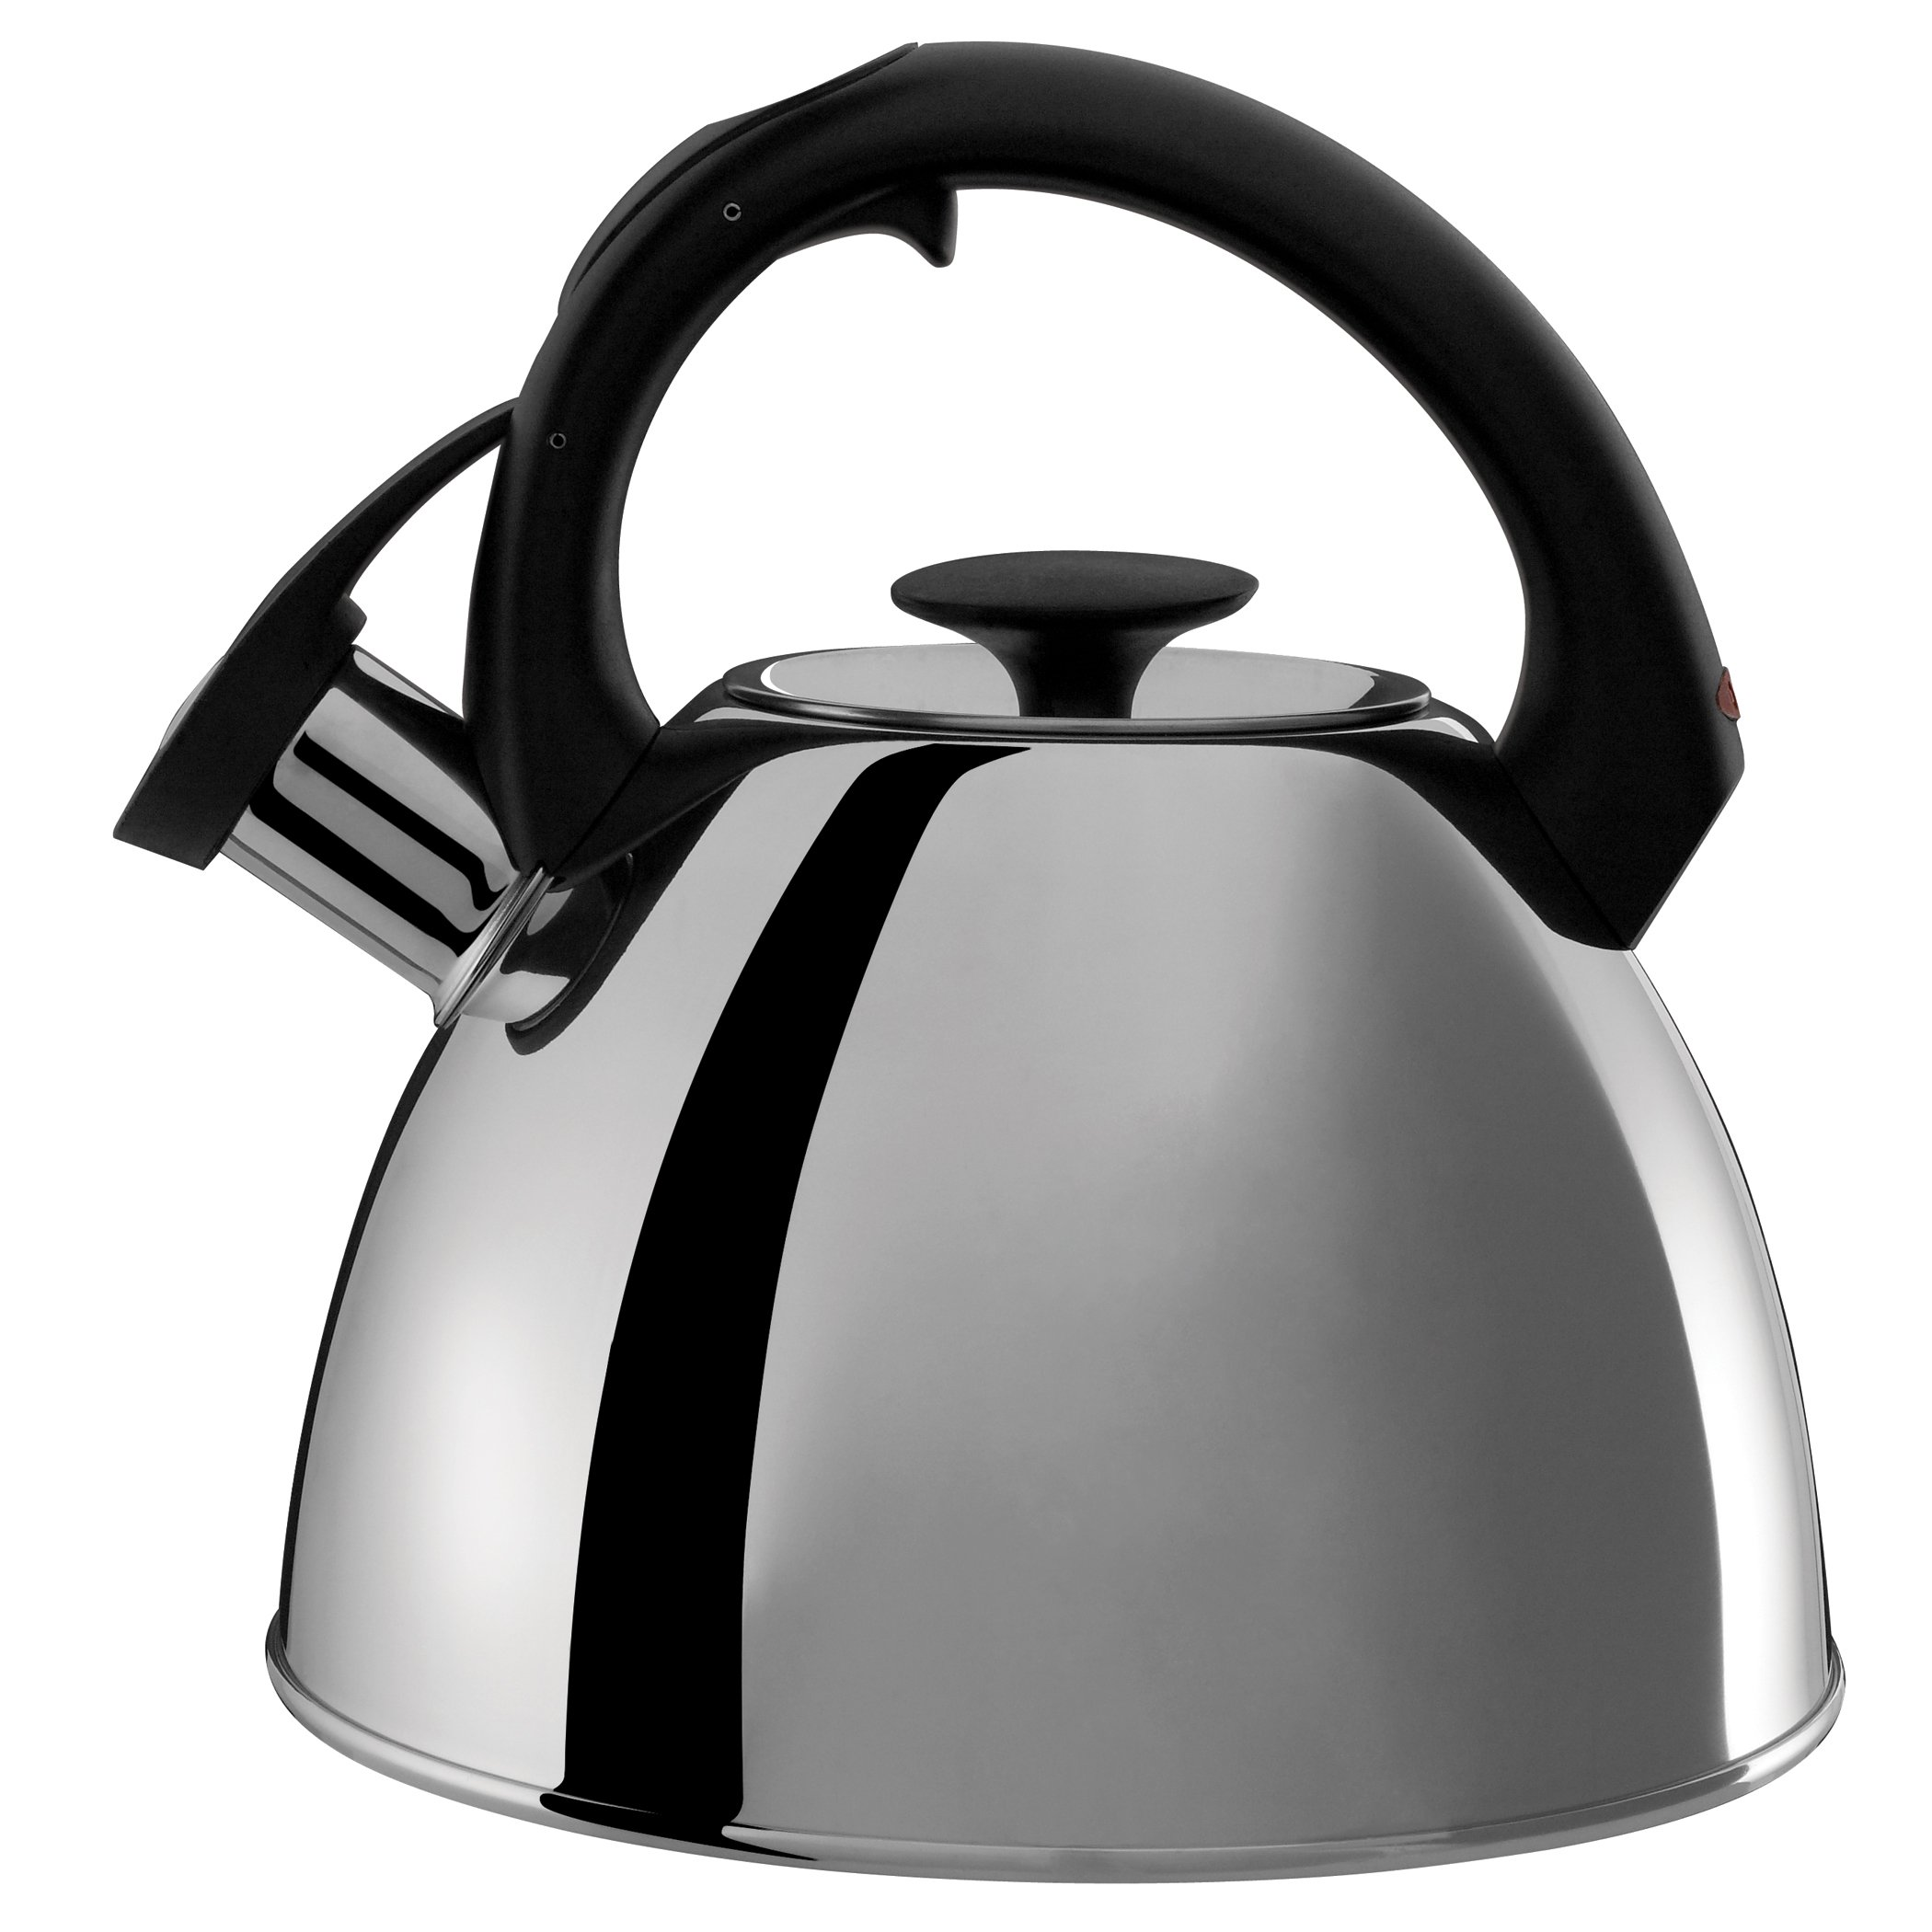 OXO Good Grips Click-Click Tea Kettle Polished Stainless Steel  2.1-Qt.